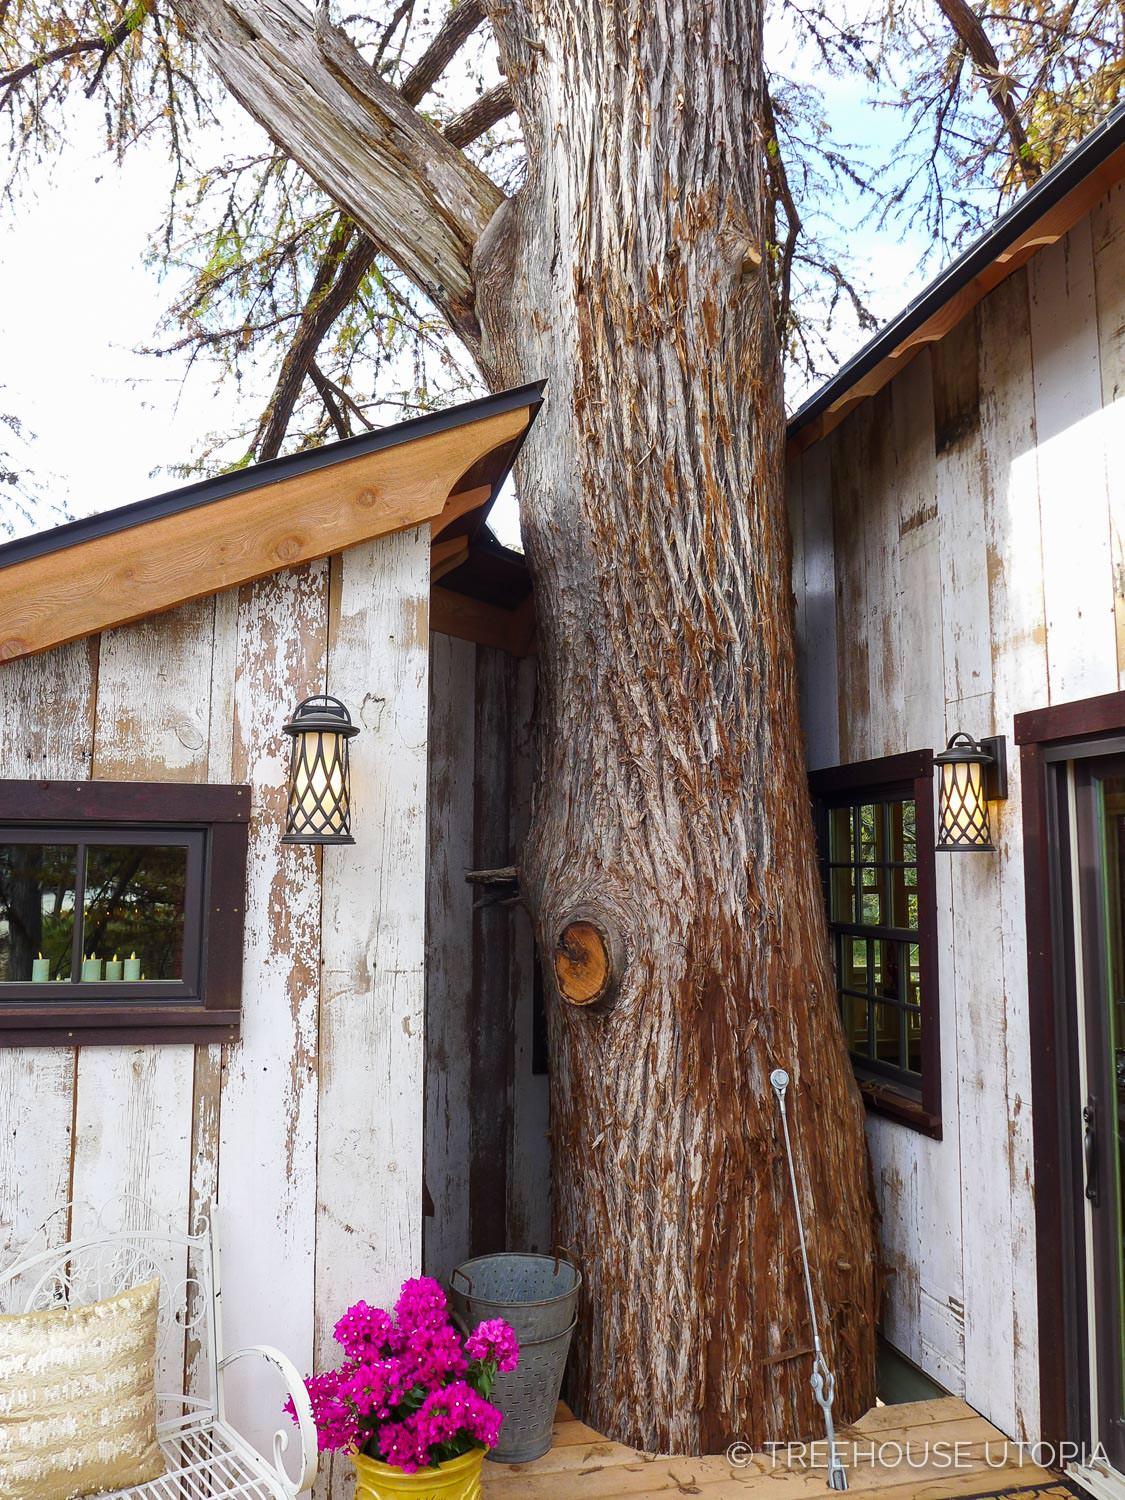 Cypress through back deck on Chapelle at Treehouse Utopia, a Texas Hill Country Retreat. Photo by Nelson Treehouse.